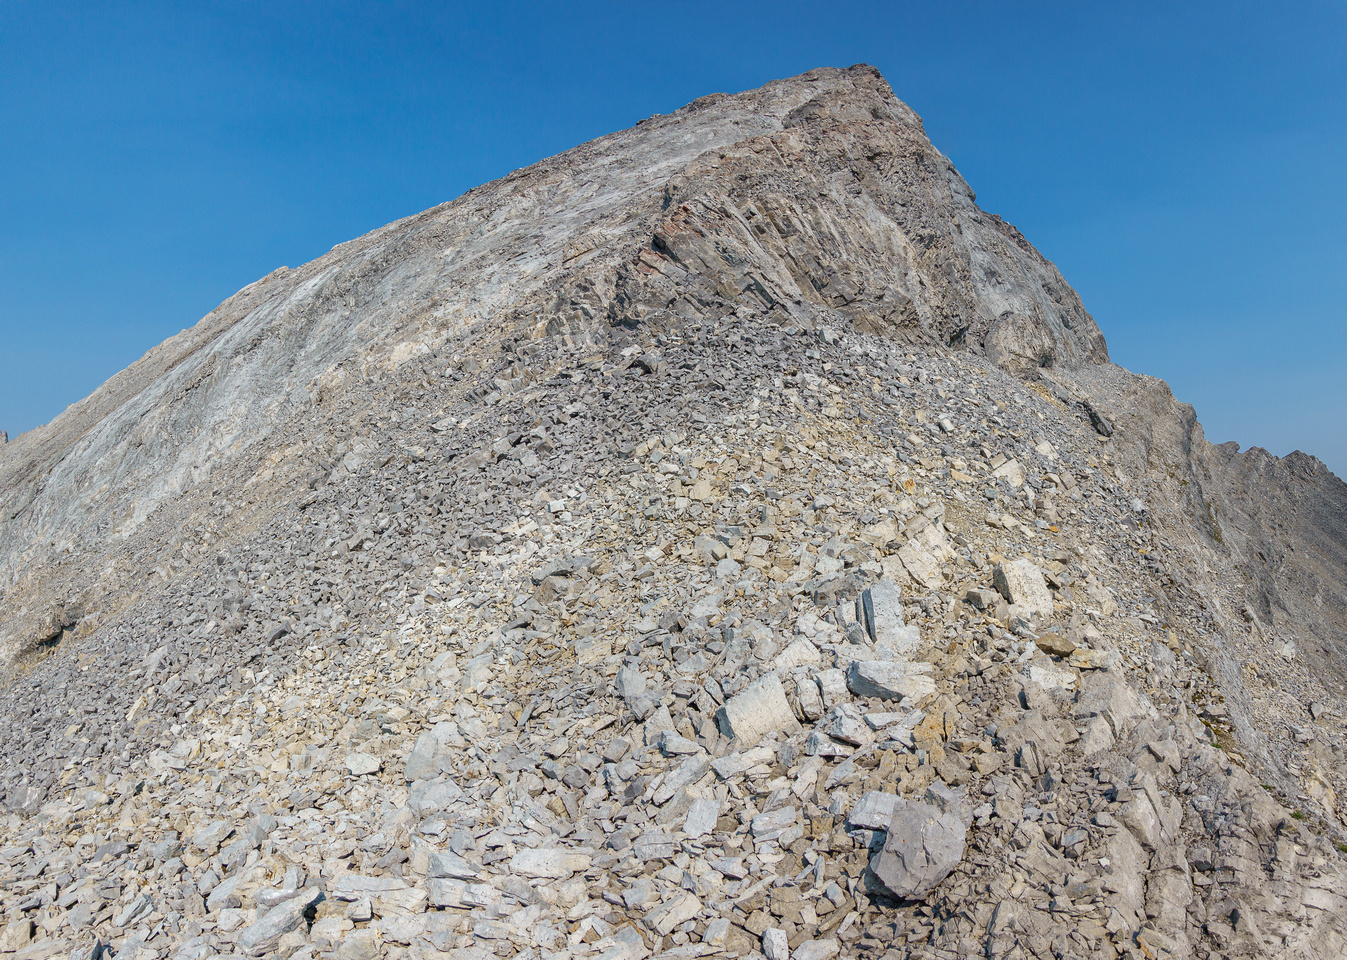 The steep east face of Mount Oliver is moderate scrambling.